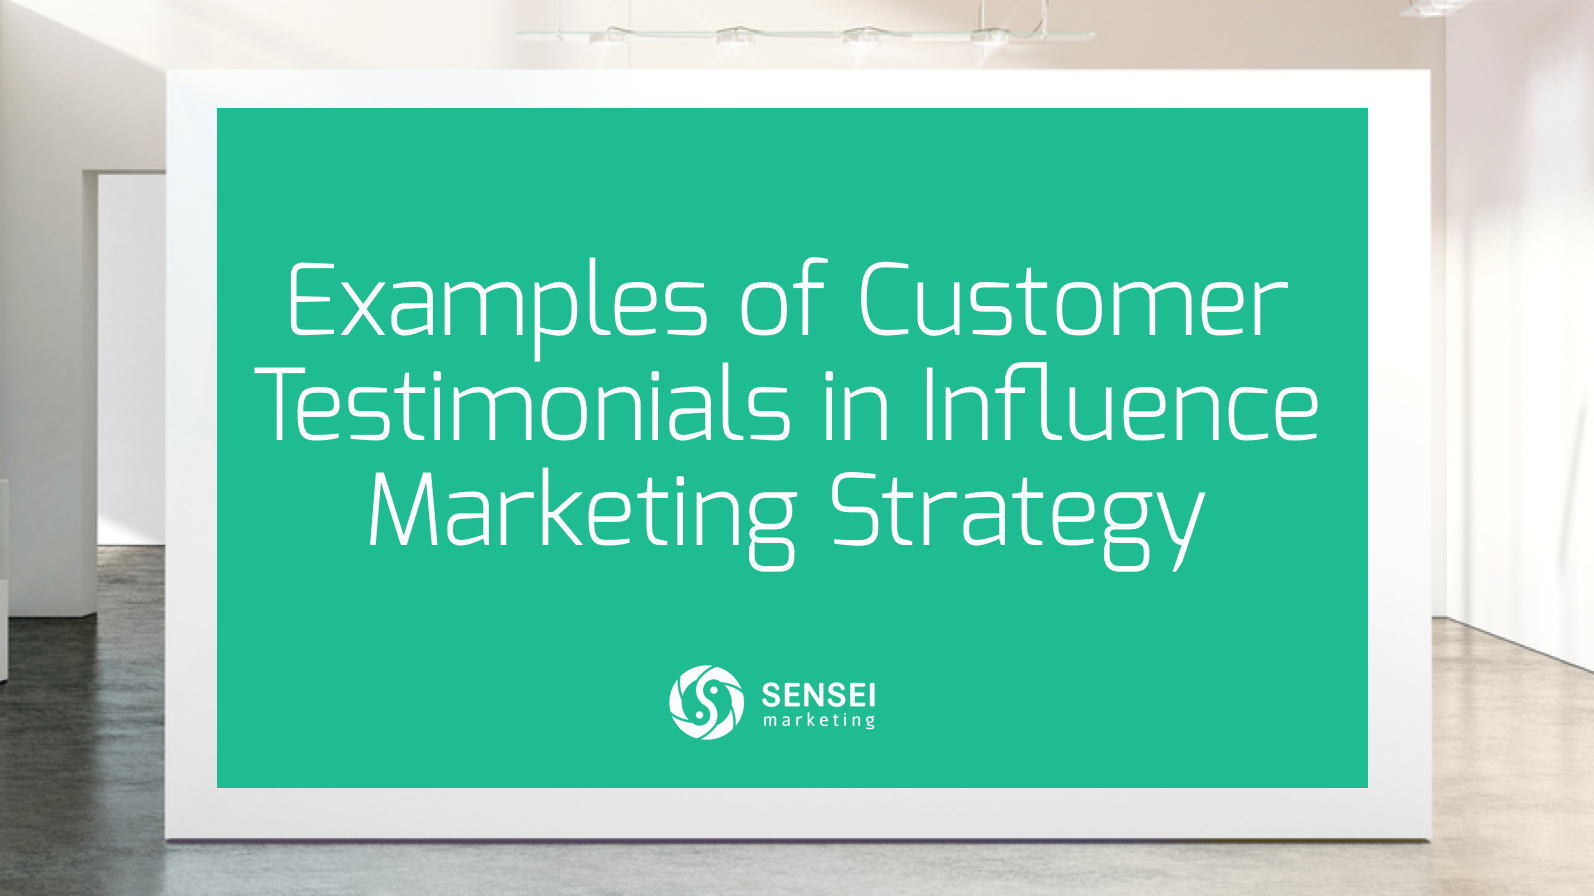 examples of customer testimonials in influence marketing strategy